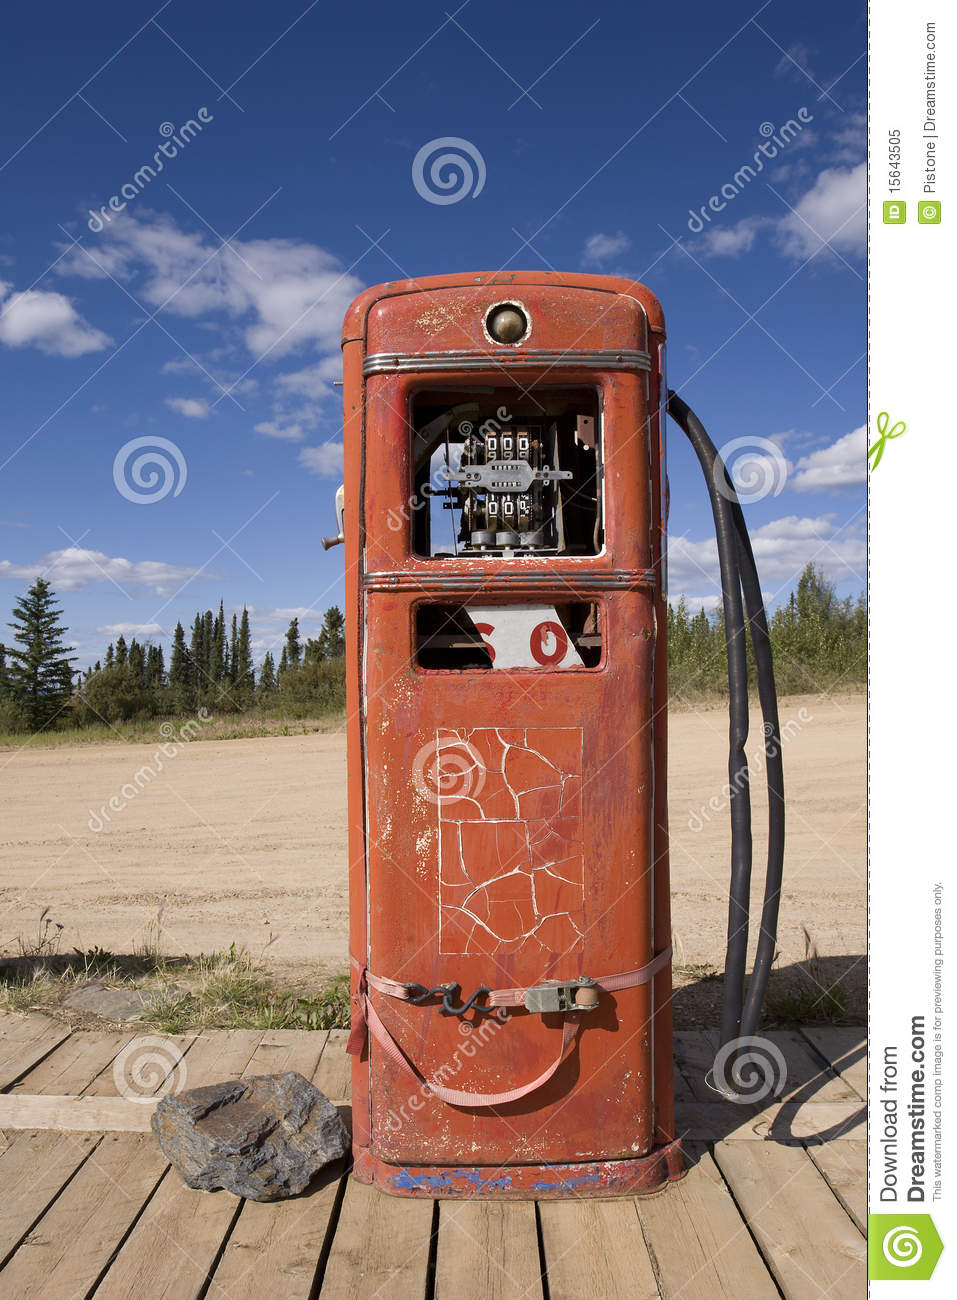 Rusty Abandoned Gas Pump Boundary Royalty Free Stock